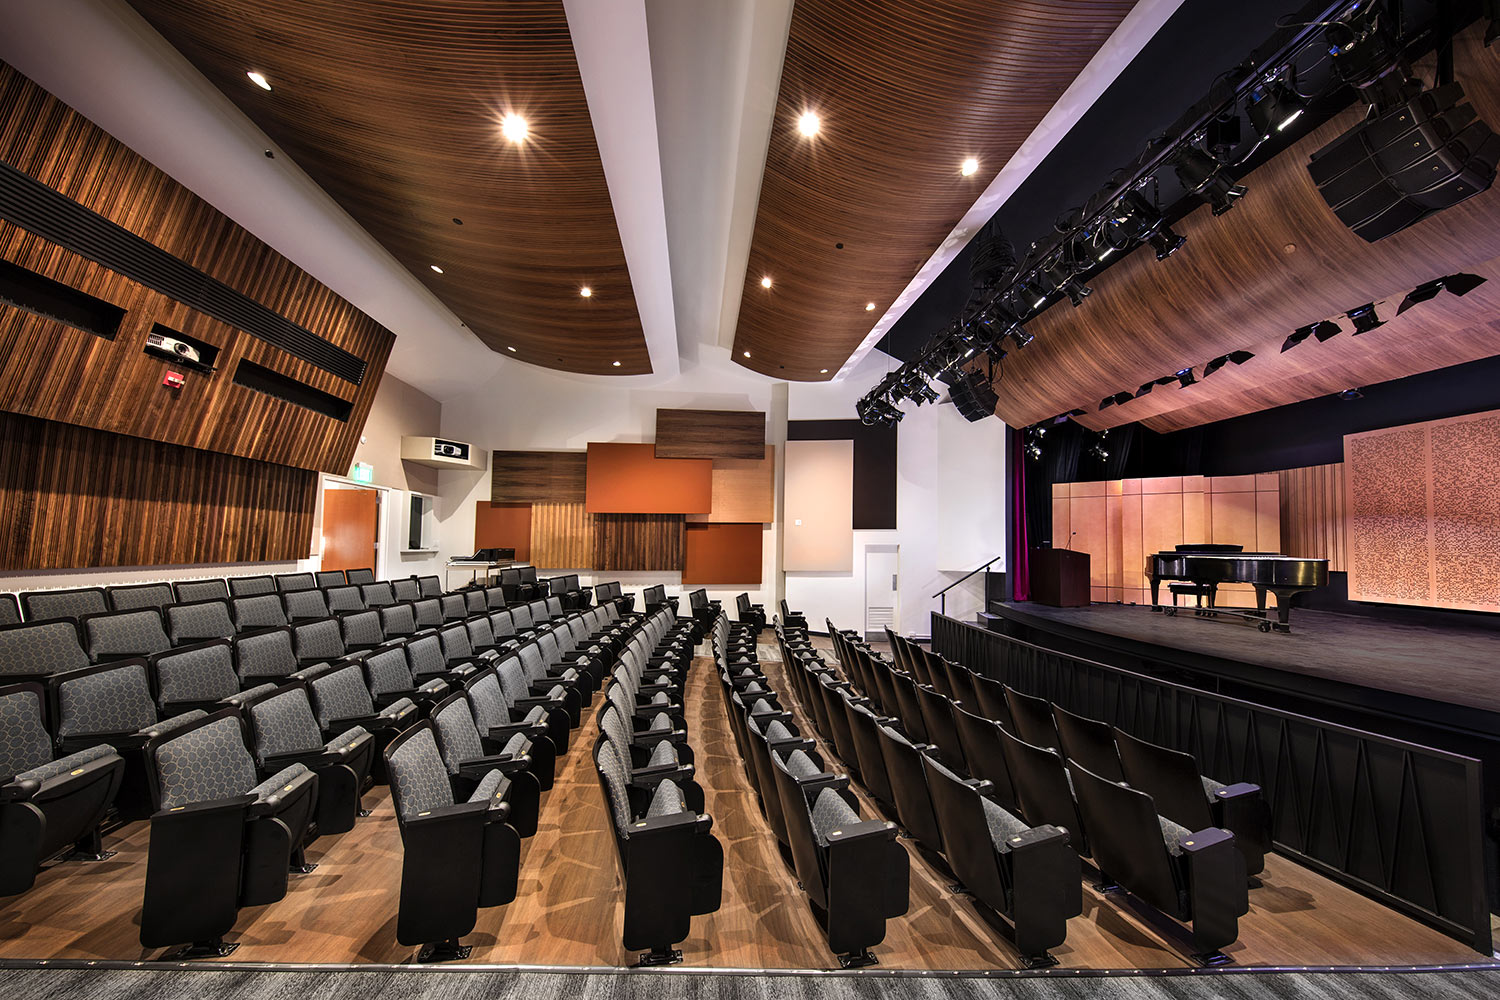 The Herb Alpert Foundation engaged WSDG to design the acoustics for a small on-campus live performance theater at the prestigious UCLA, with help of Lani Hall. Theater side view.